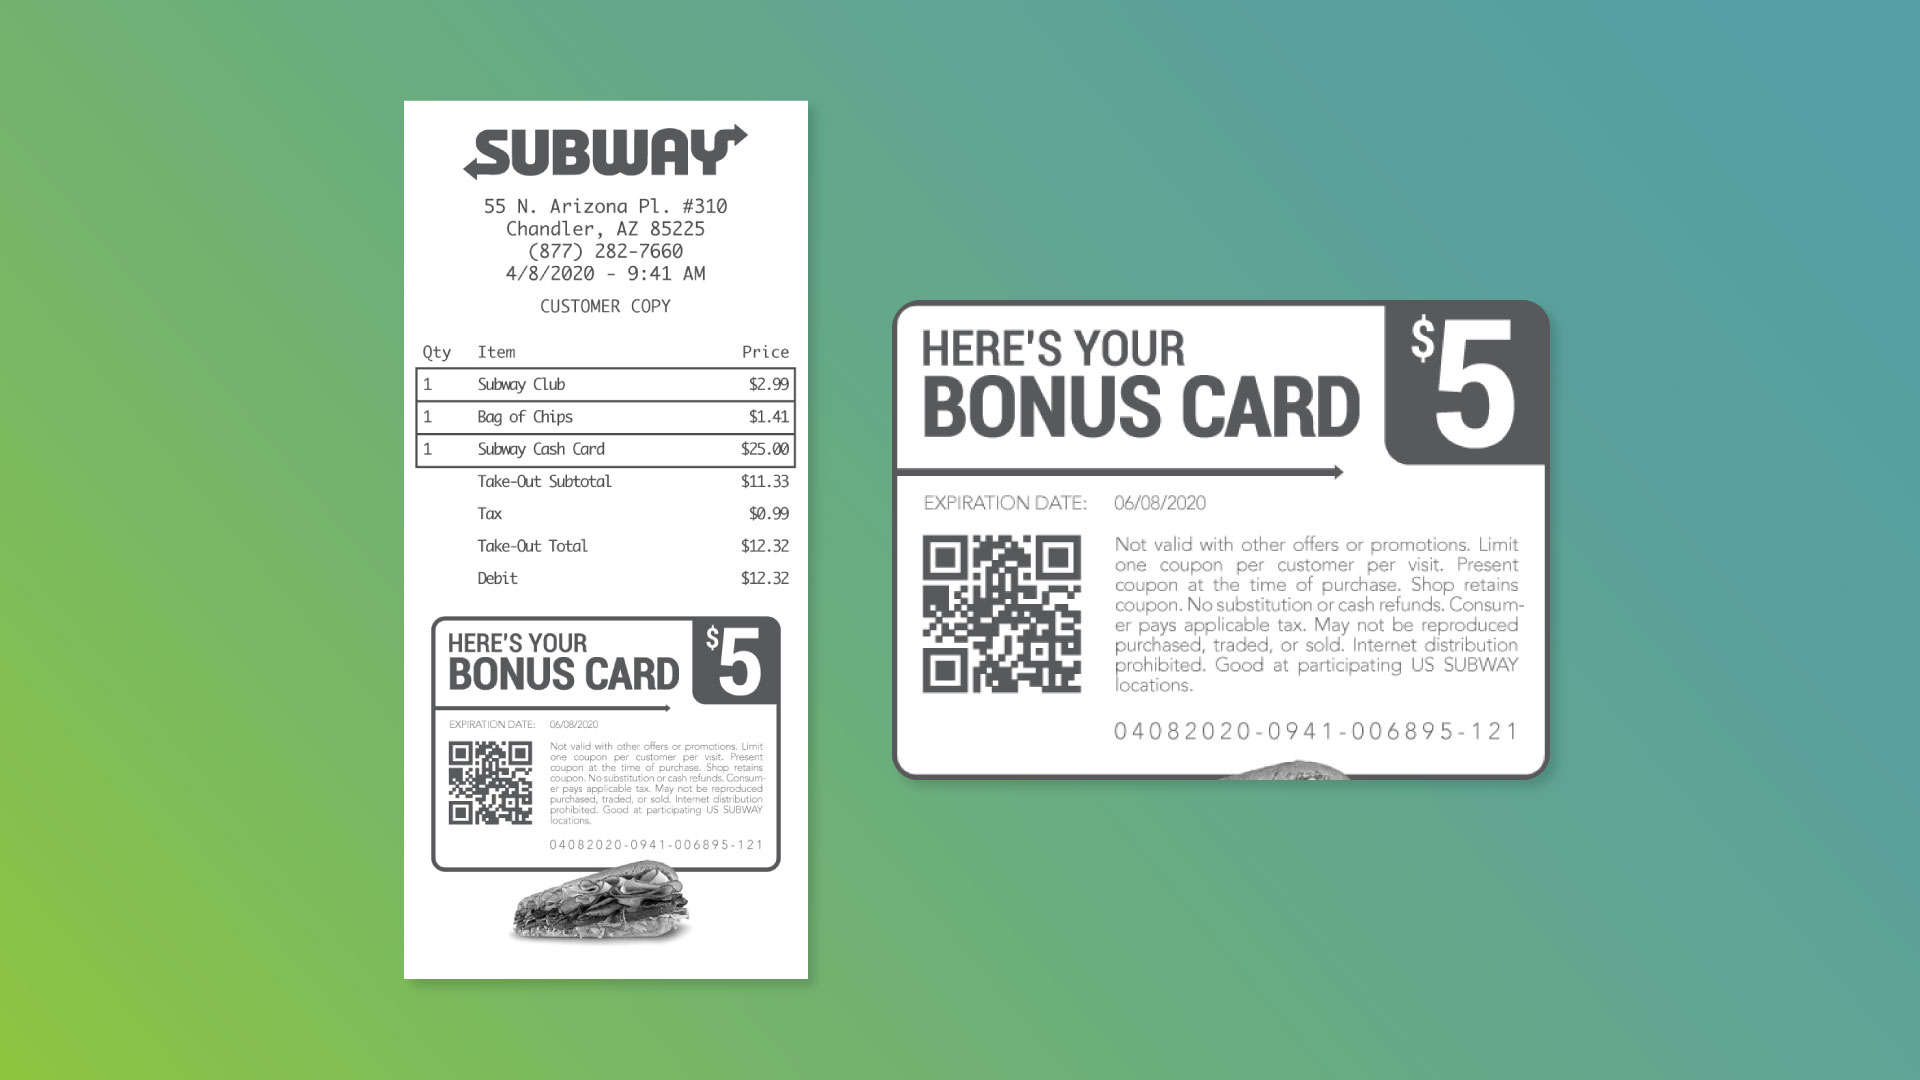 Example Receipt-Printed Card Offer